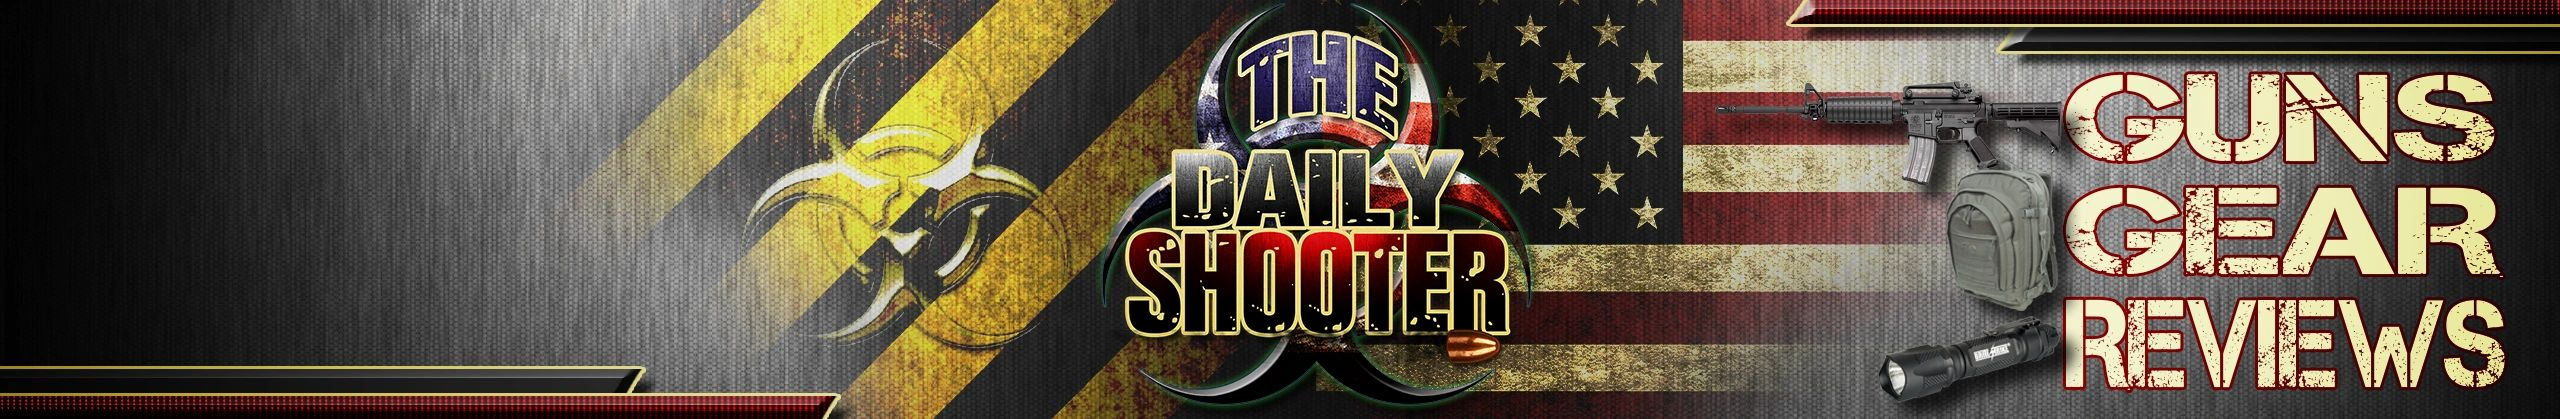 THE DAILY SHOOTER LOGO LONG